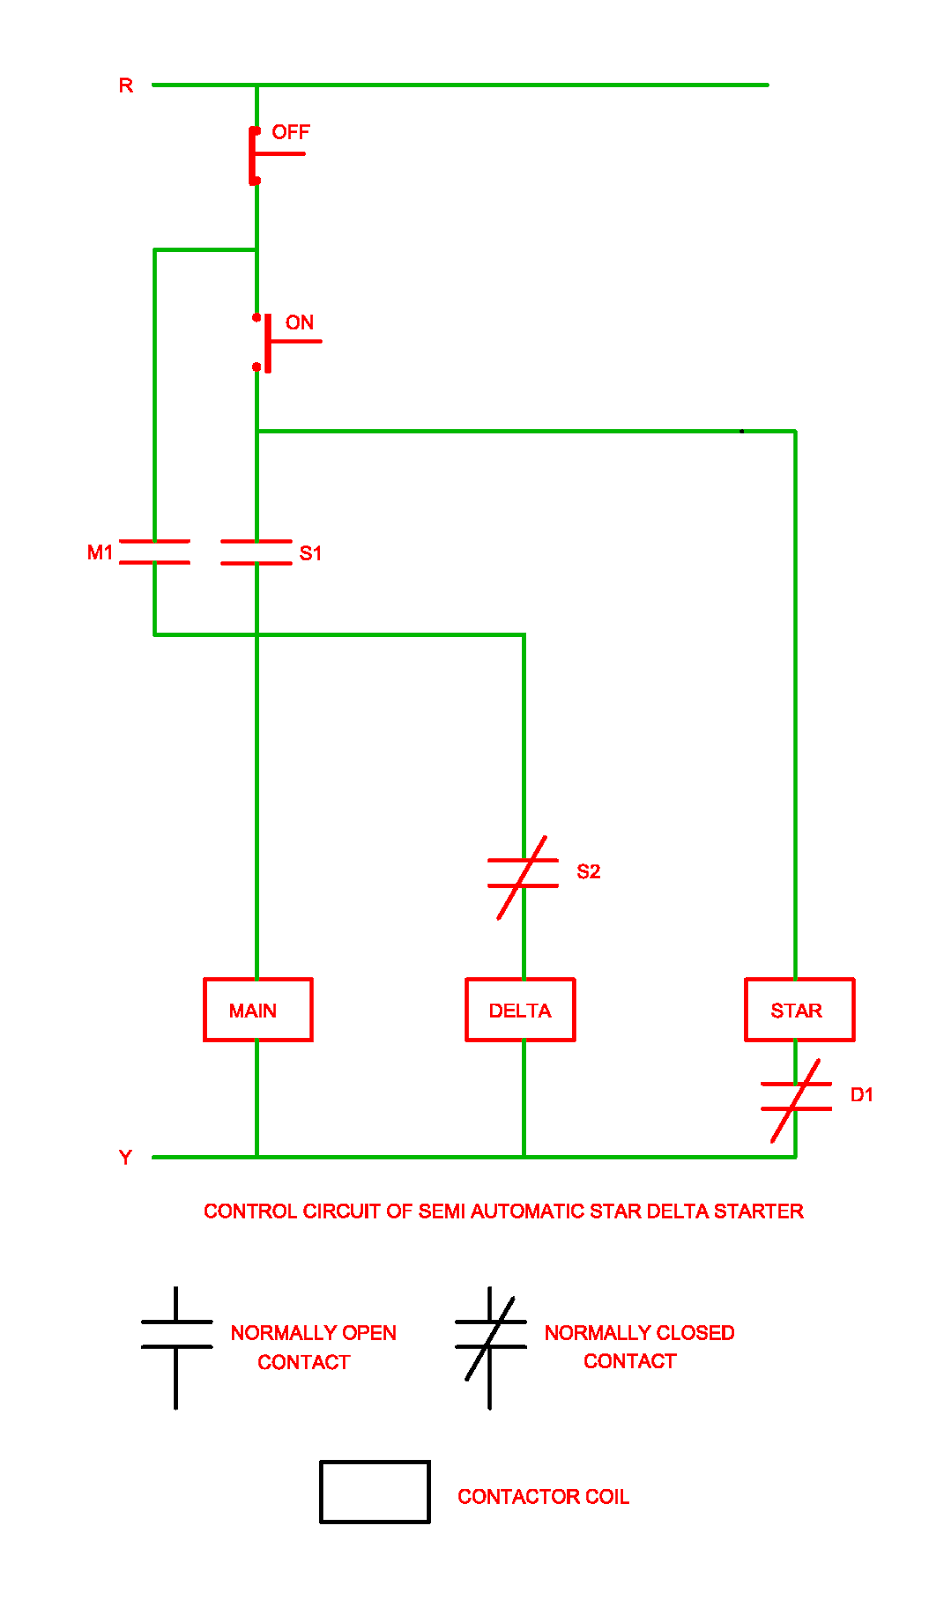 Star Delta Starter Wiring Diagram Dc Ke on wye delta connection diagram, hertzberg russell diagram, star delta motor manual controls ckt diagram, star connection diagram, 3 phase motor starter diagram, auto transformer starter diagram, motor star delta starter diagram, star delta circuit diagram, rocket launch diagram, star formation diagram, star delta wiring diagram pdf, river system diagram, induction motor diagram, wye start delta run diagram, three-phase phasor diagram, star delta starter operation, forward reverse motor control diagram, how do tornadoes form diagram, life of a star diagram, wye-delta motor starter circuit diagram,